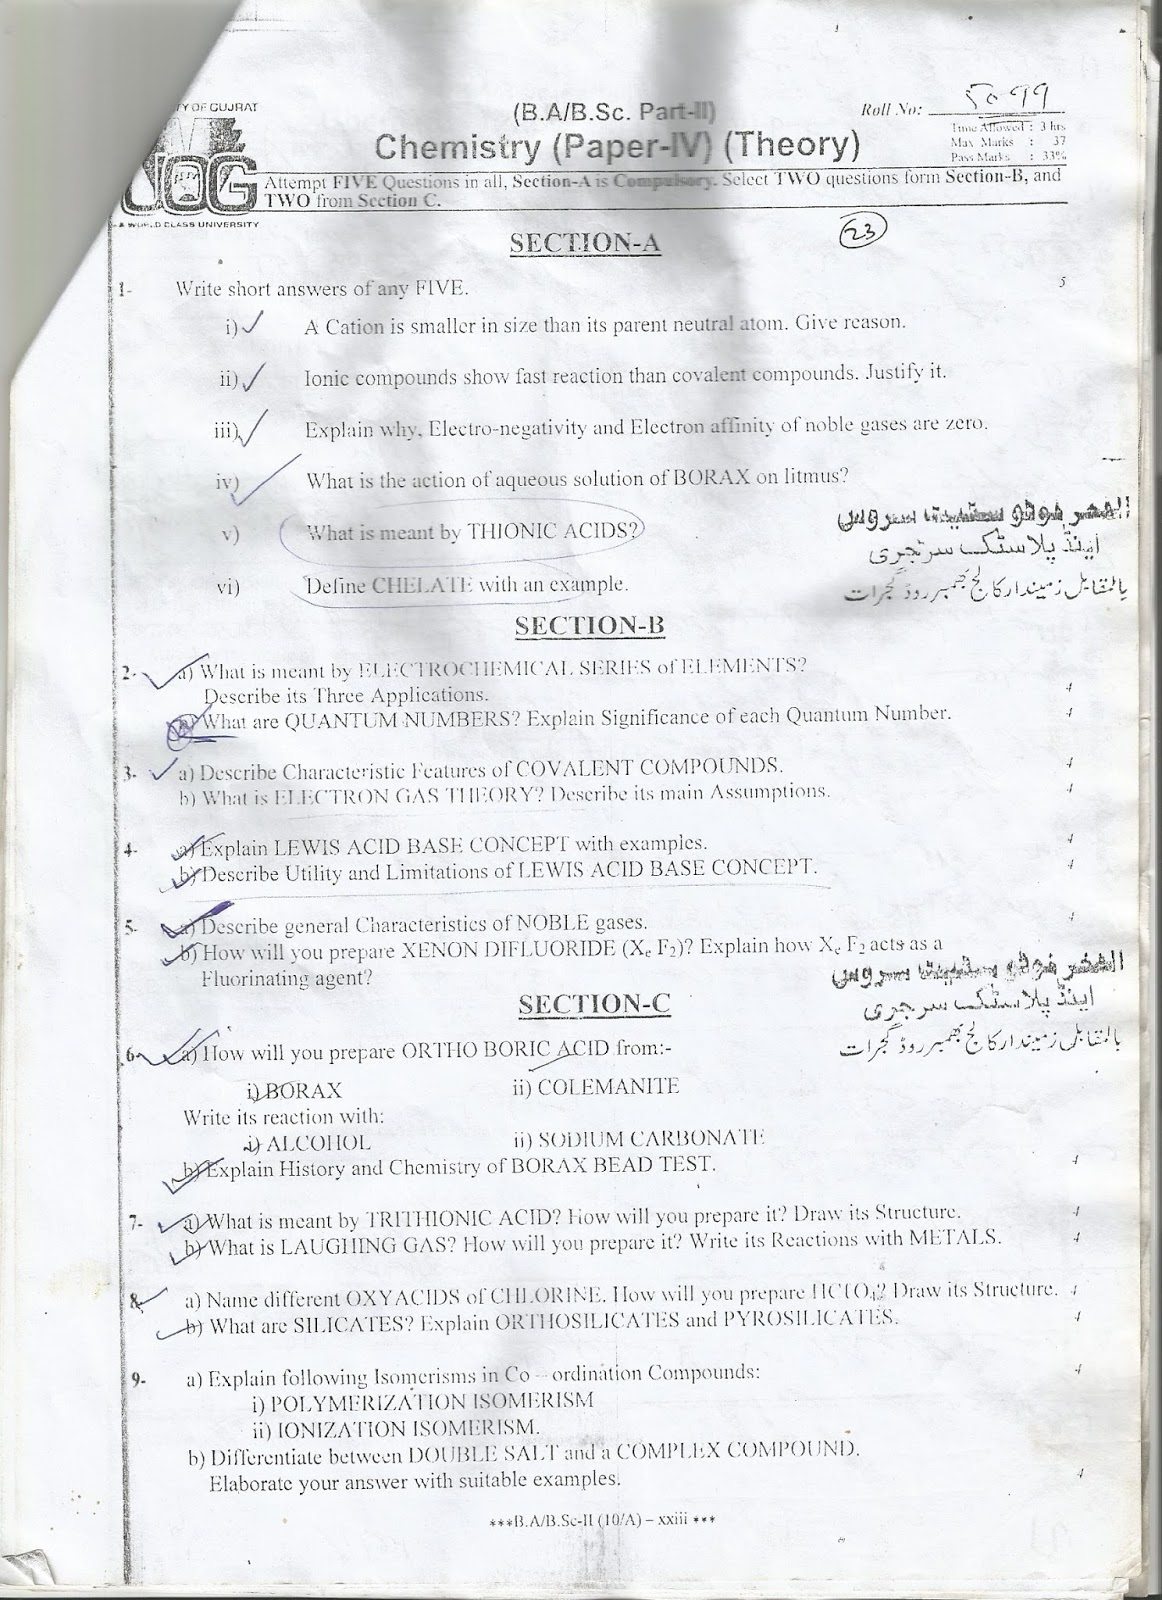 University of Gujrat BSc Inorganic Chemistry Past Paper